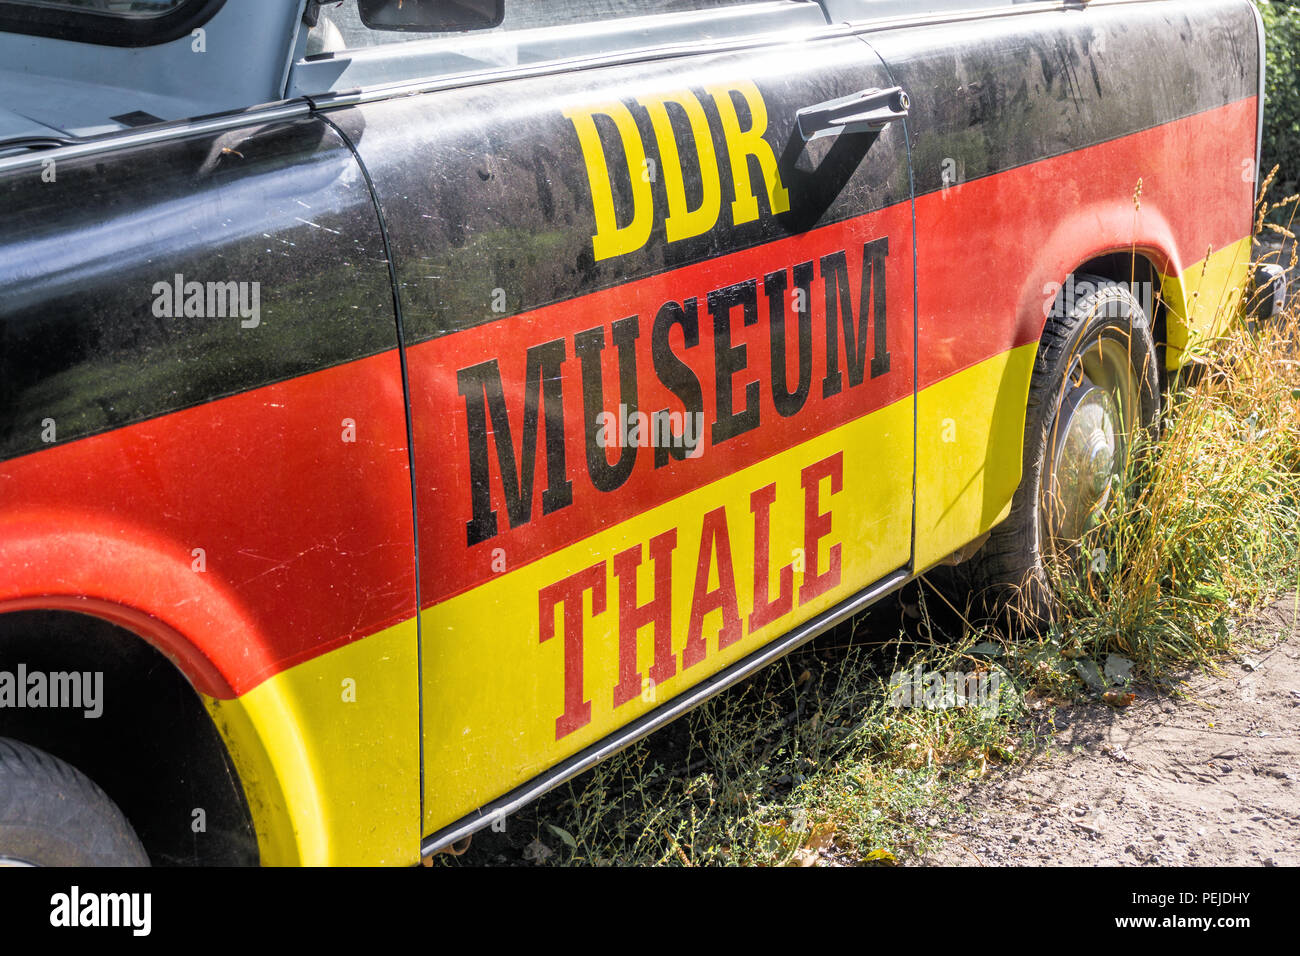 Thale, Saxony-Anhalt, Germany, July 12, 2018: Old dirty ugly Trabant with black-red-gold paint as advertisement for the GDR Museum Thale, closeup. - Stock Image